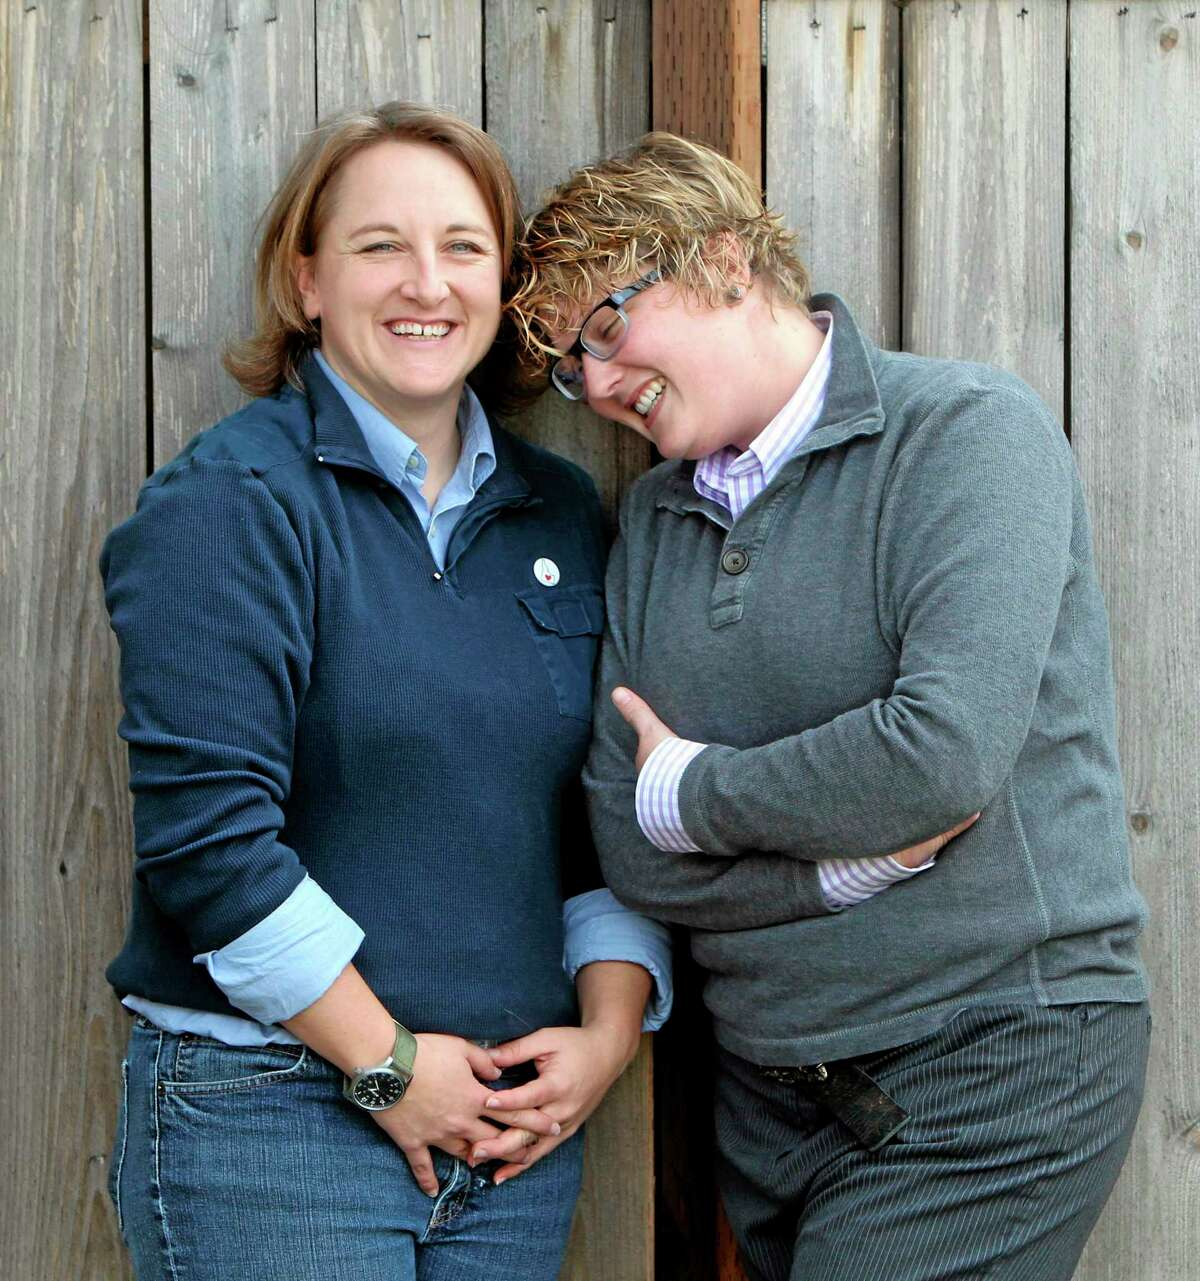 FILE - In this Nov. 8, 2013 file photo, Amber Beierle, left, and Rachael Robertson pose for a photograph at their home in Boise, Idaho. They are one of four same-sex couples who are suing the state in federal court to challenge laws banning same-sex marriage and denying recognition to same-sex couples who married in other states. U.S. District Magistrate Judge Candy Dale ruled Tuesday evening, May 13, 2014, that Idaho's laws banning same-sex marriage unconstitutionally deny gay and lesbian citizens of their fundamental right to marry. Gov. C.L.